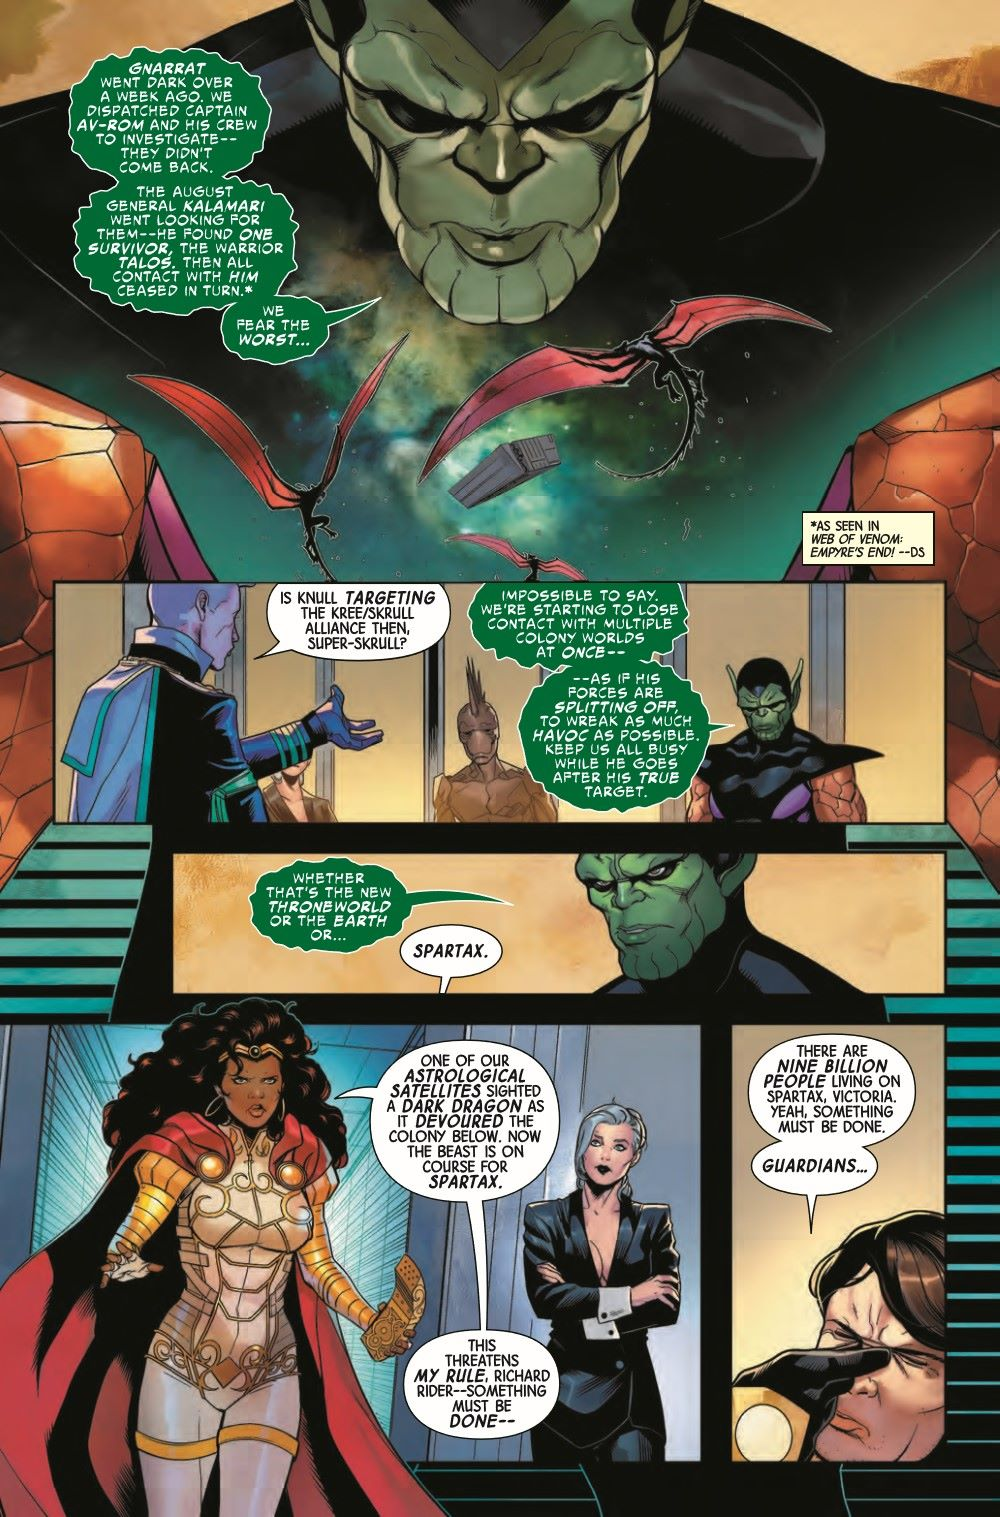 GARGAL2020010_Previews-5-1 ComicList Previews: GUARDIANS OF THE GALAXY #10